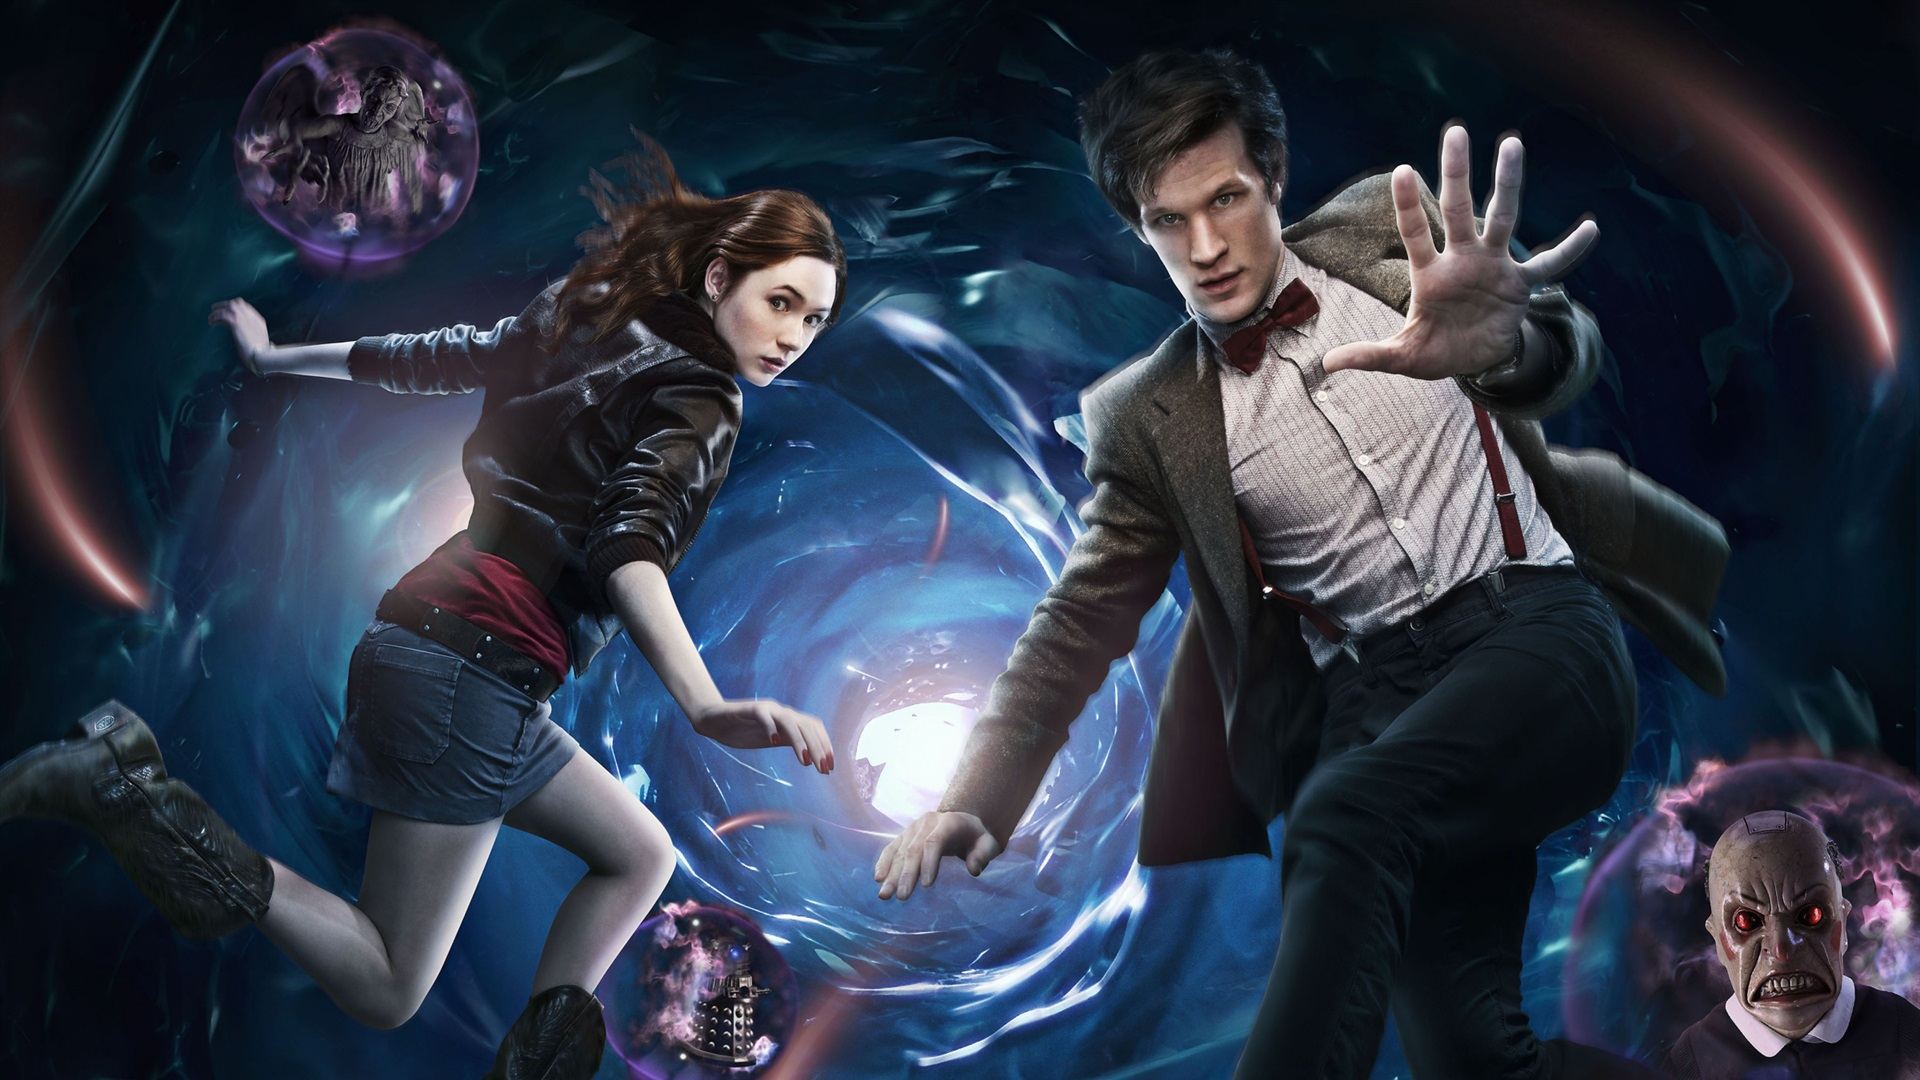 Wallpaper Doctor Who Tv Series Hd 1920x1440 Hd Picture Image